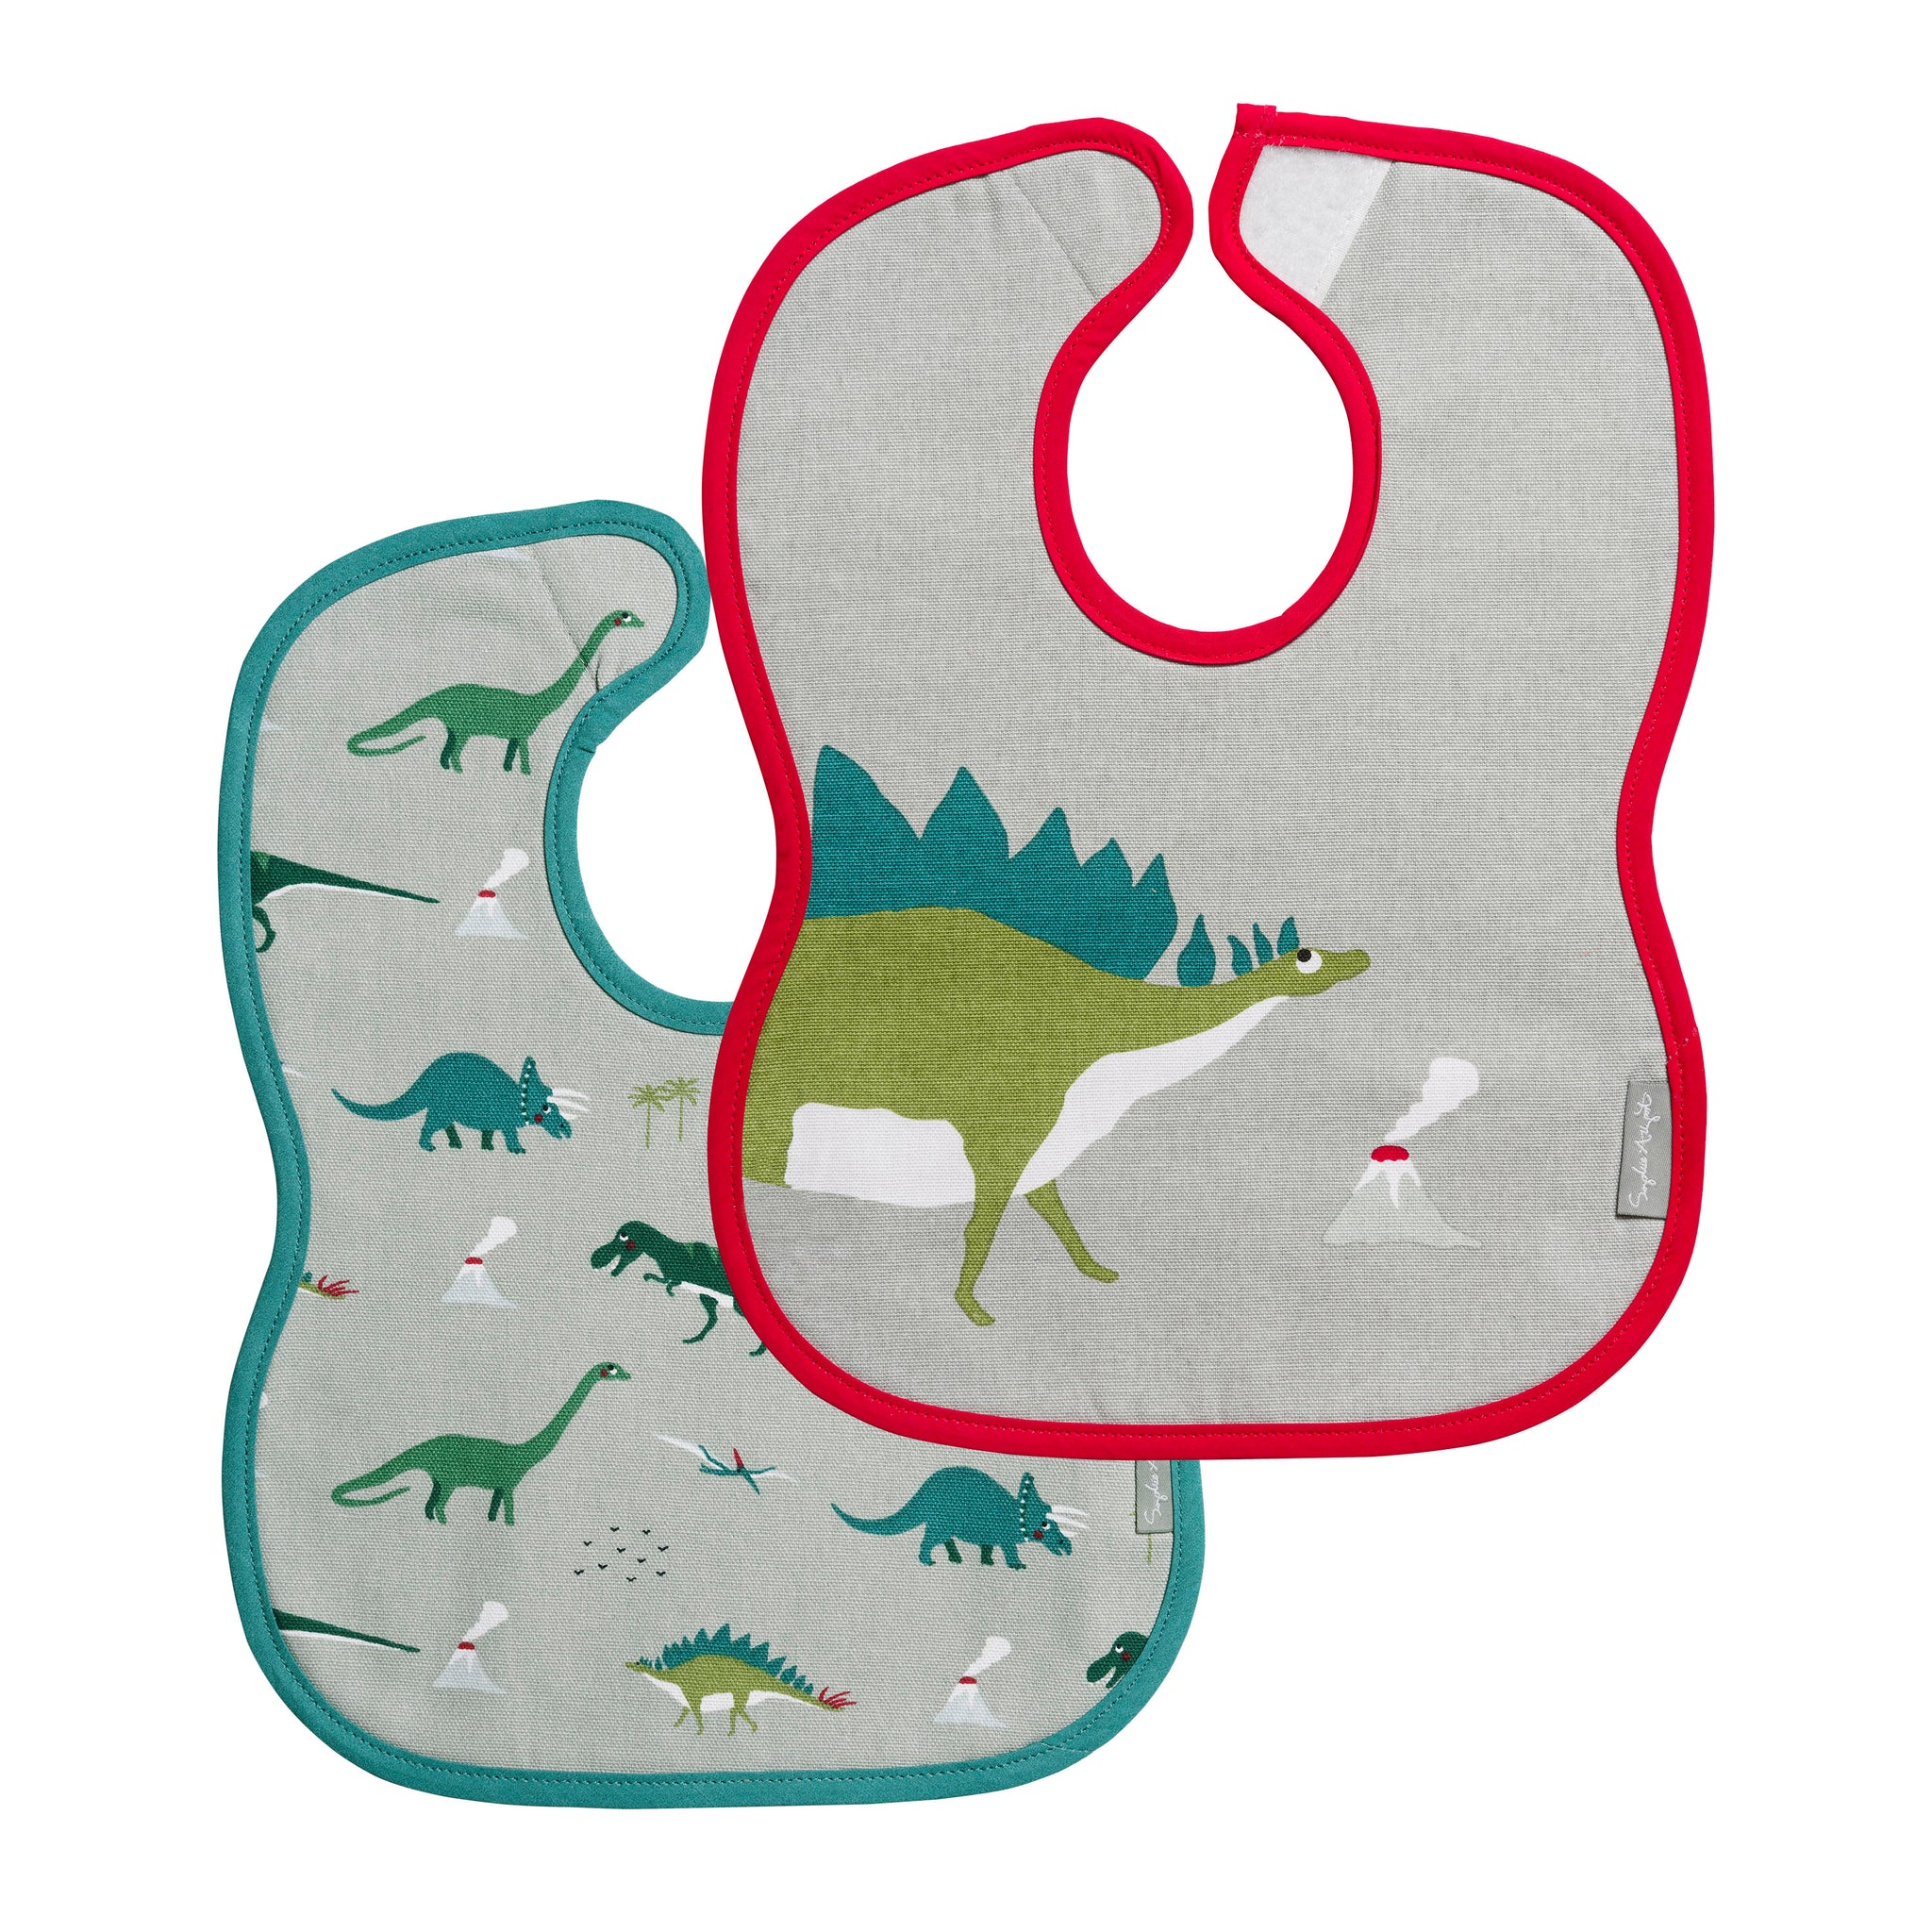 Dinosaur Bibs (Set of 2)